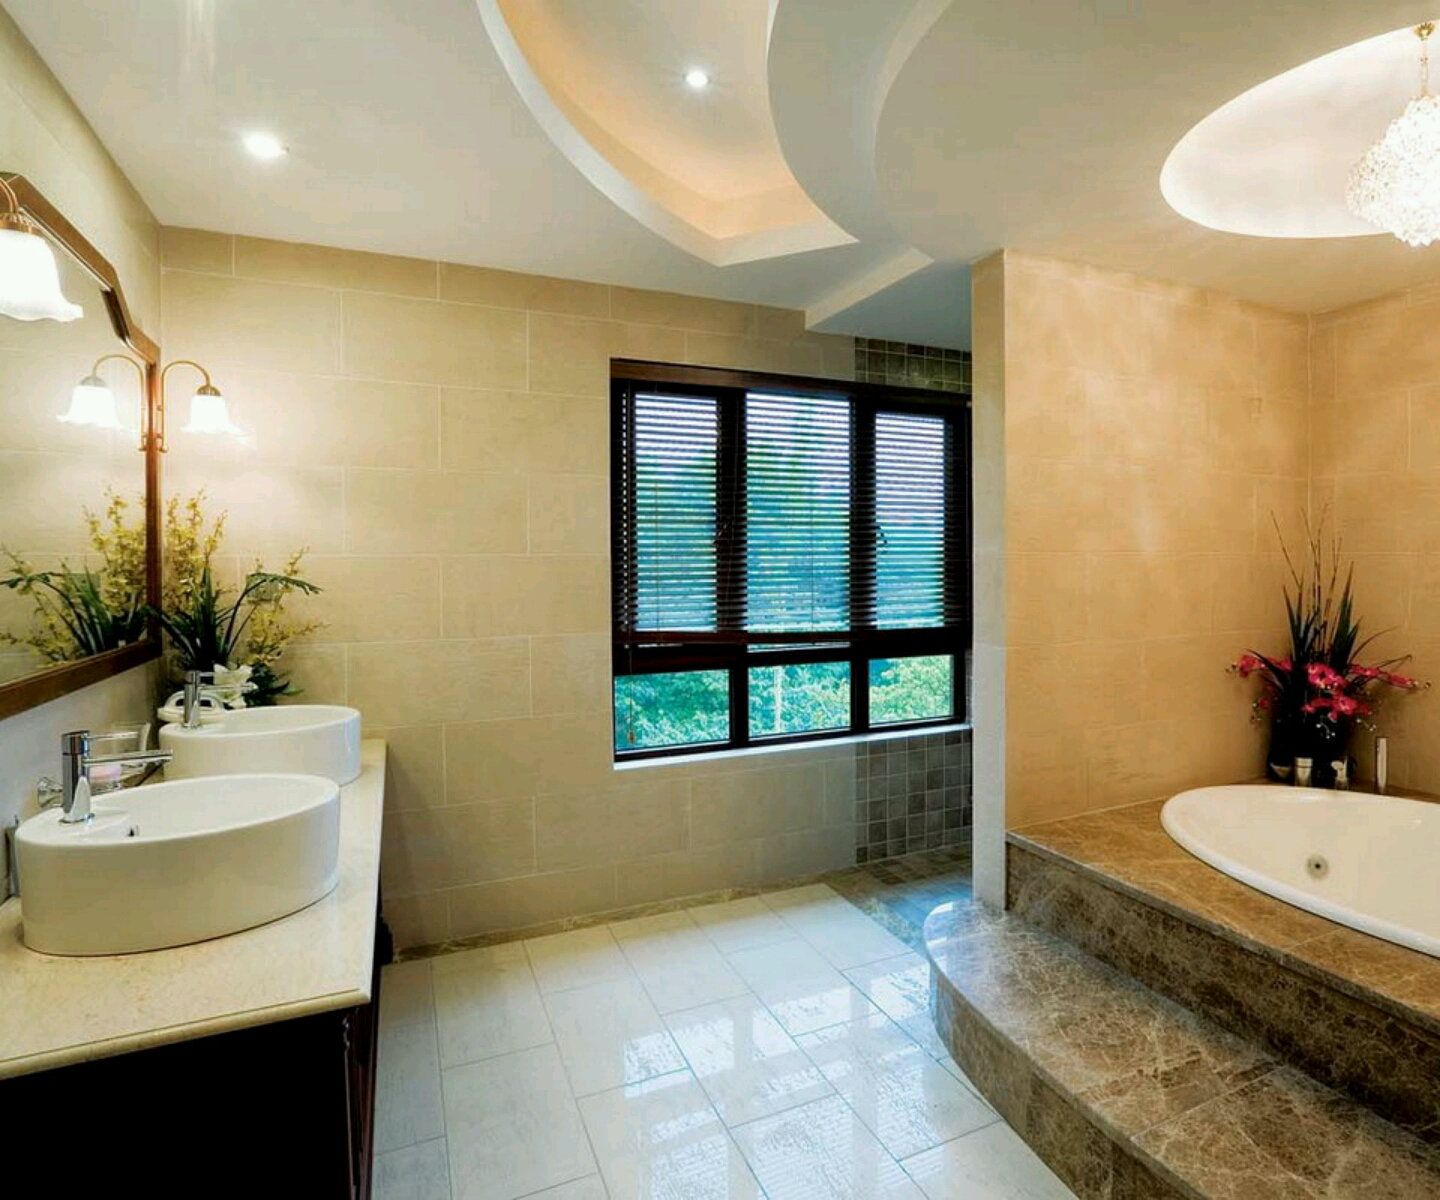 Washroom design joy studio design gallery best design for New washroom designs